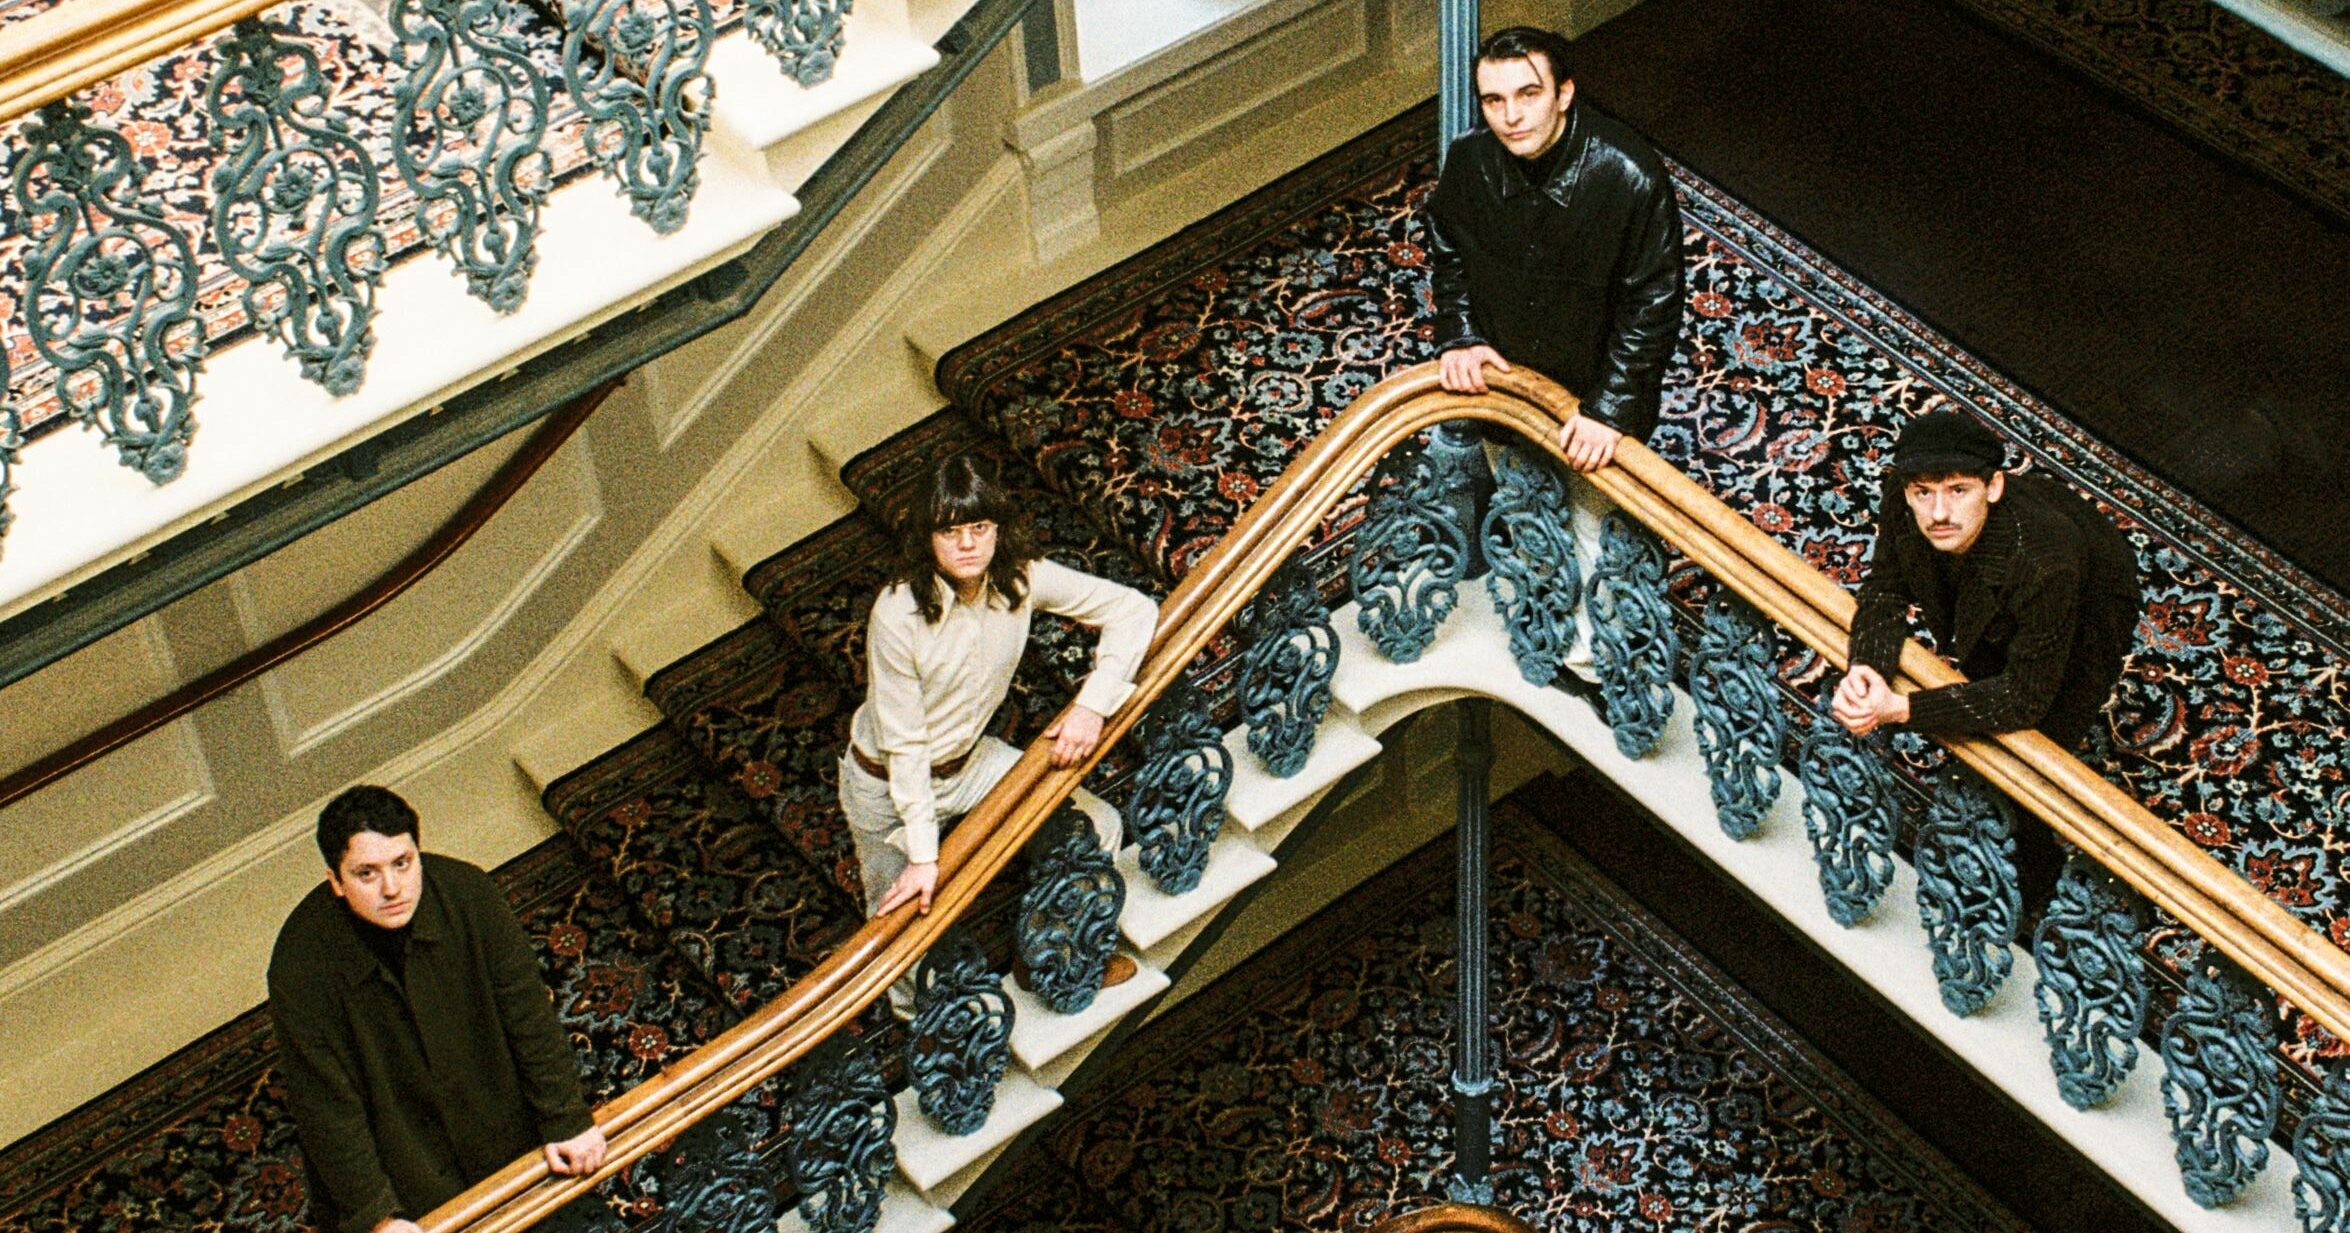 FUR Announce Debut Album 'When You Walk Away', Share Video for New Song